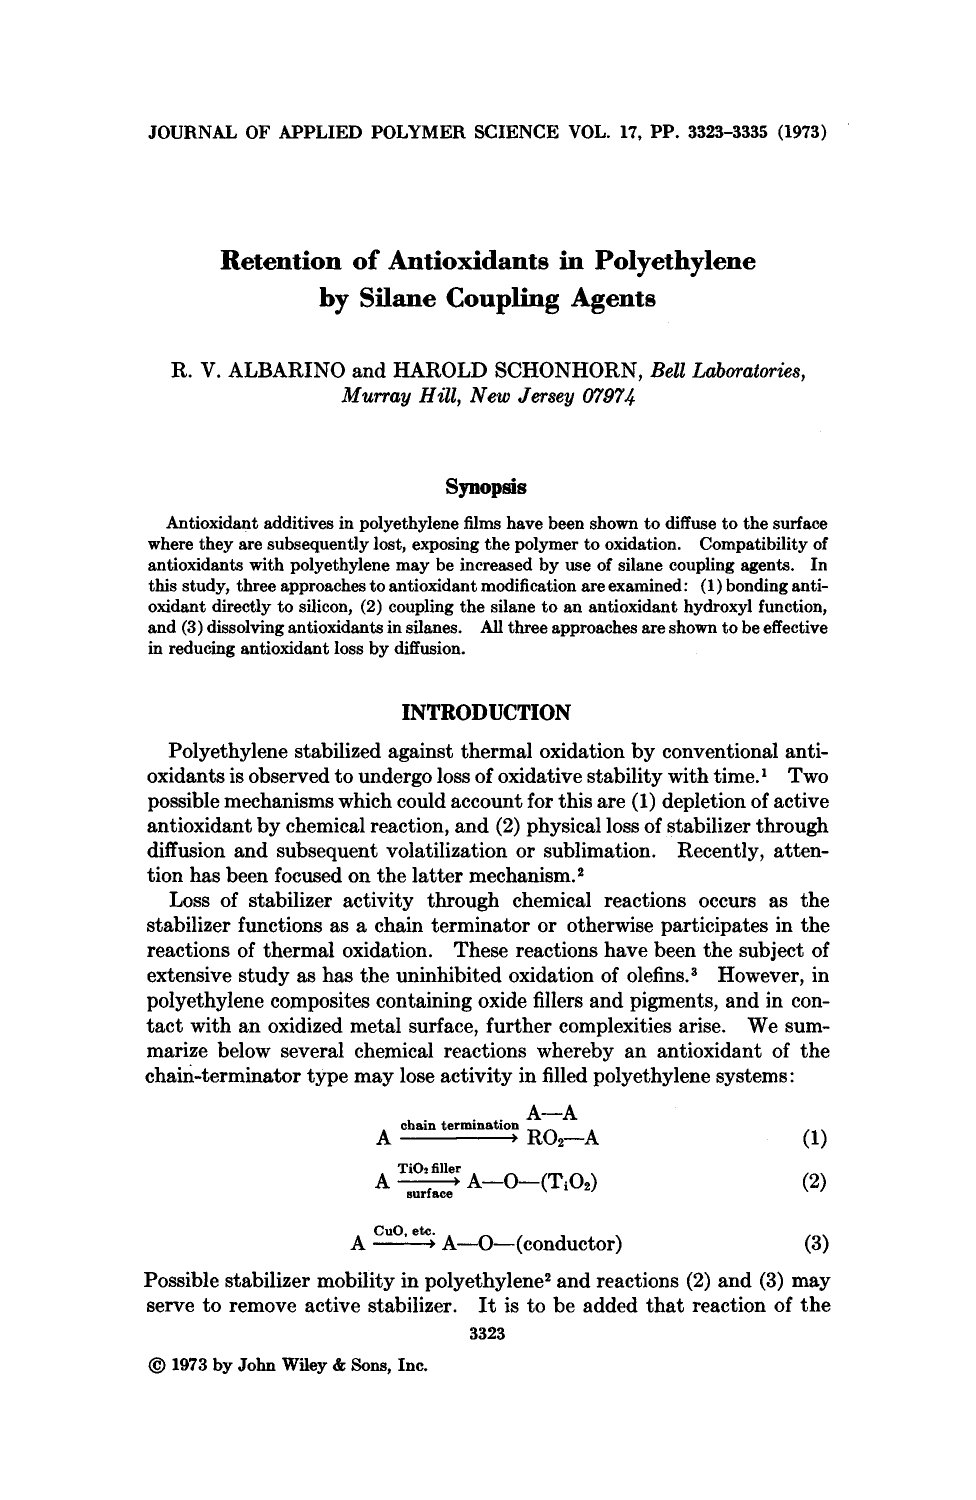 Retention of antioxidants in polyethylene by silane coupling